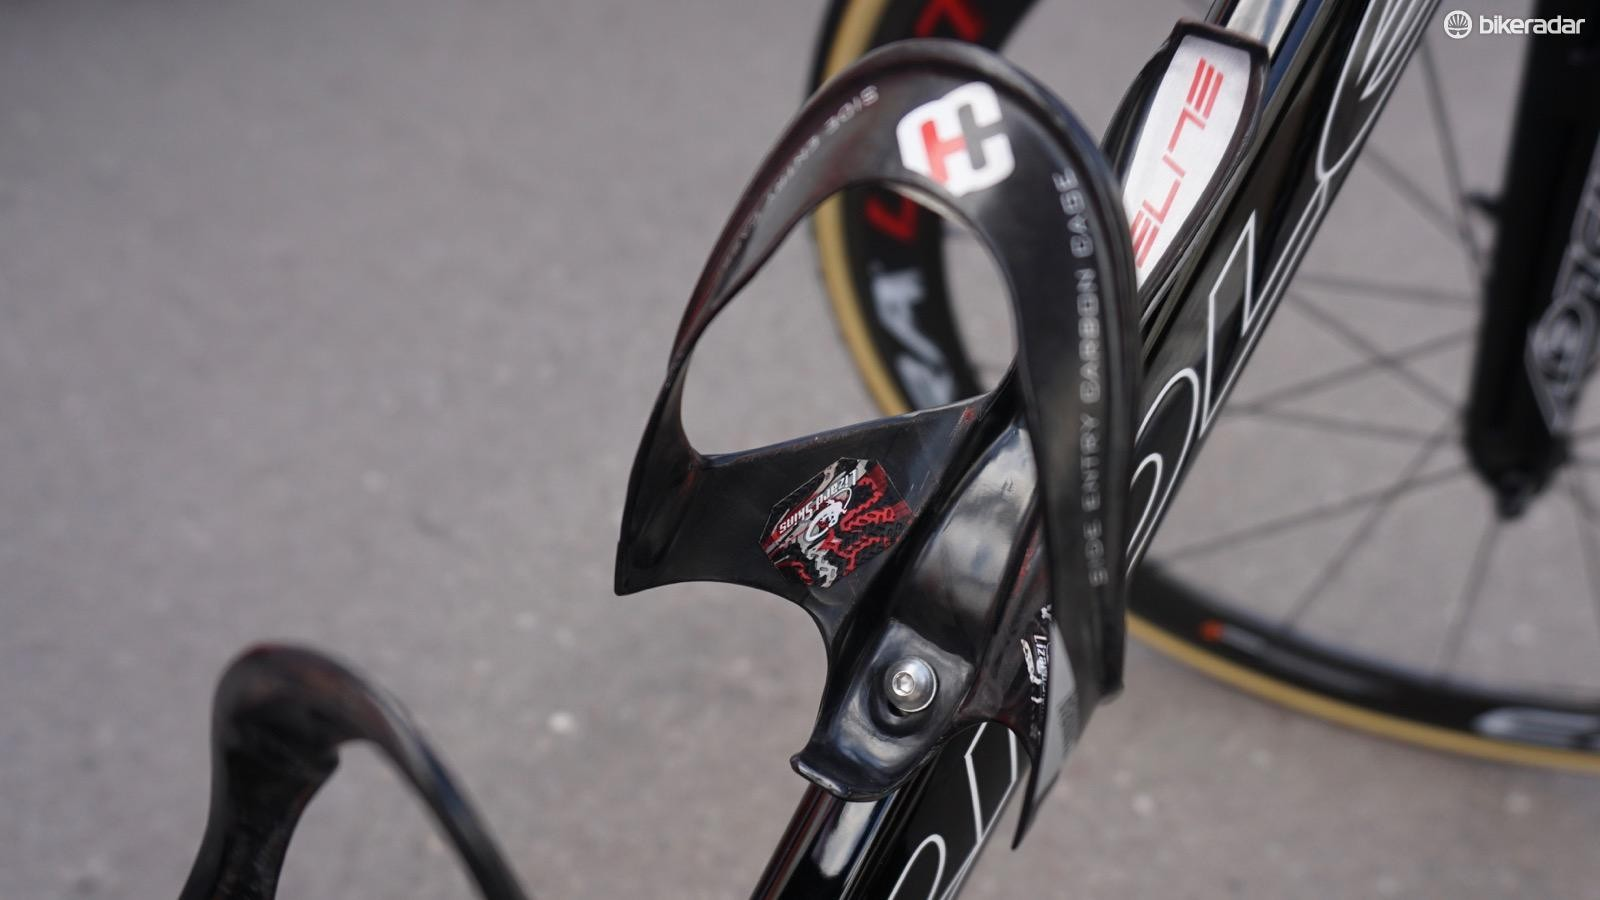 Lotto-Soudal mechanics use a bit of Lizard Skin bar tape to keep bottles from ejecting